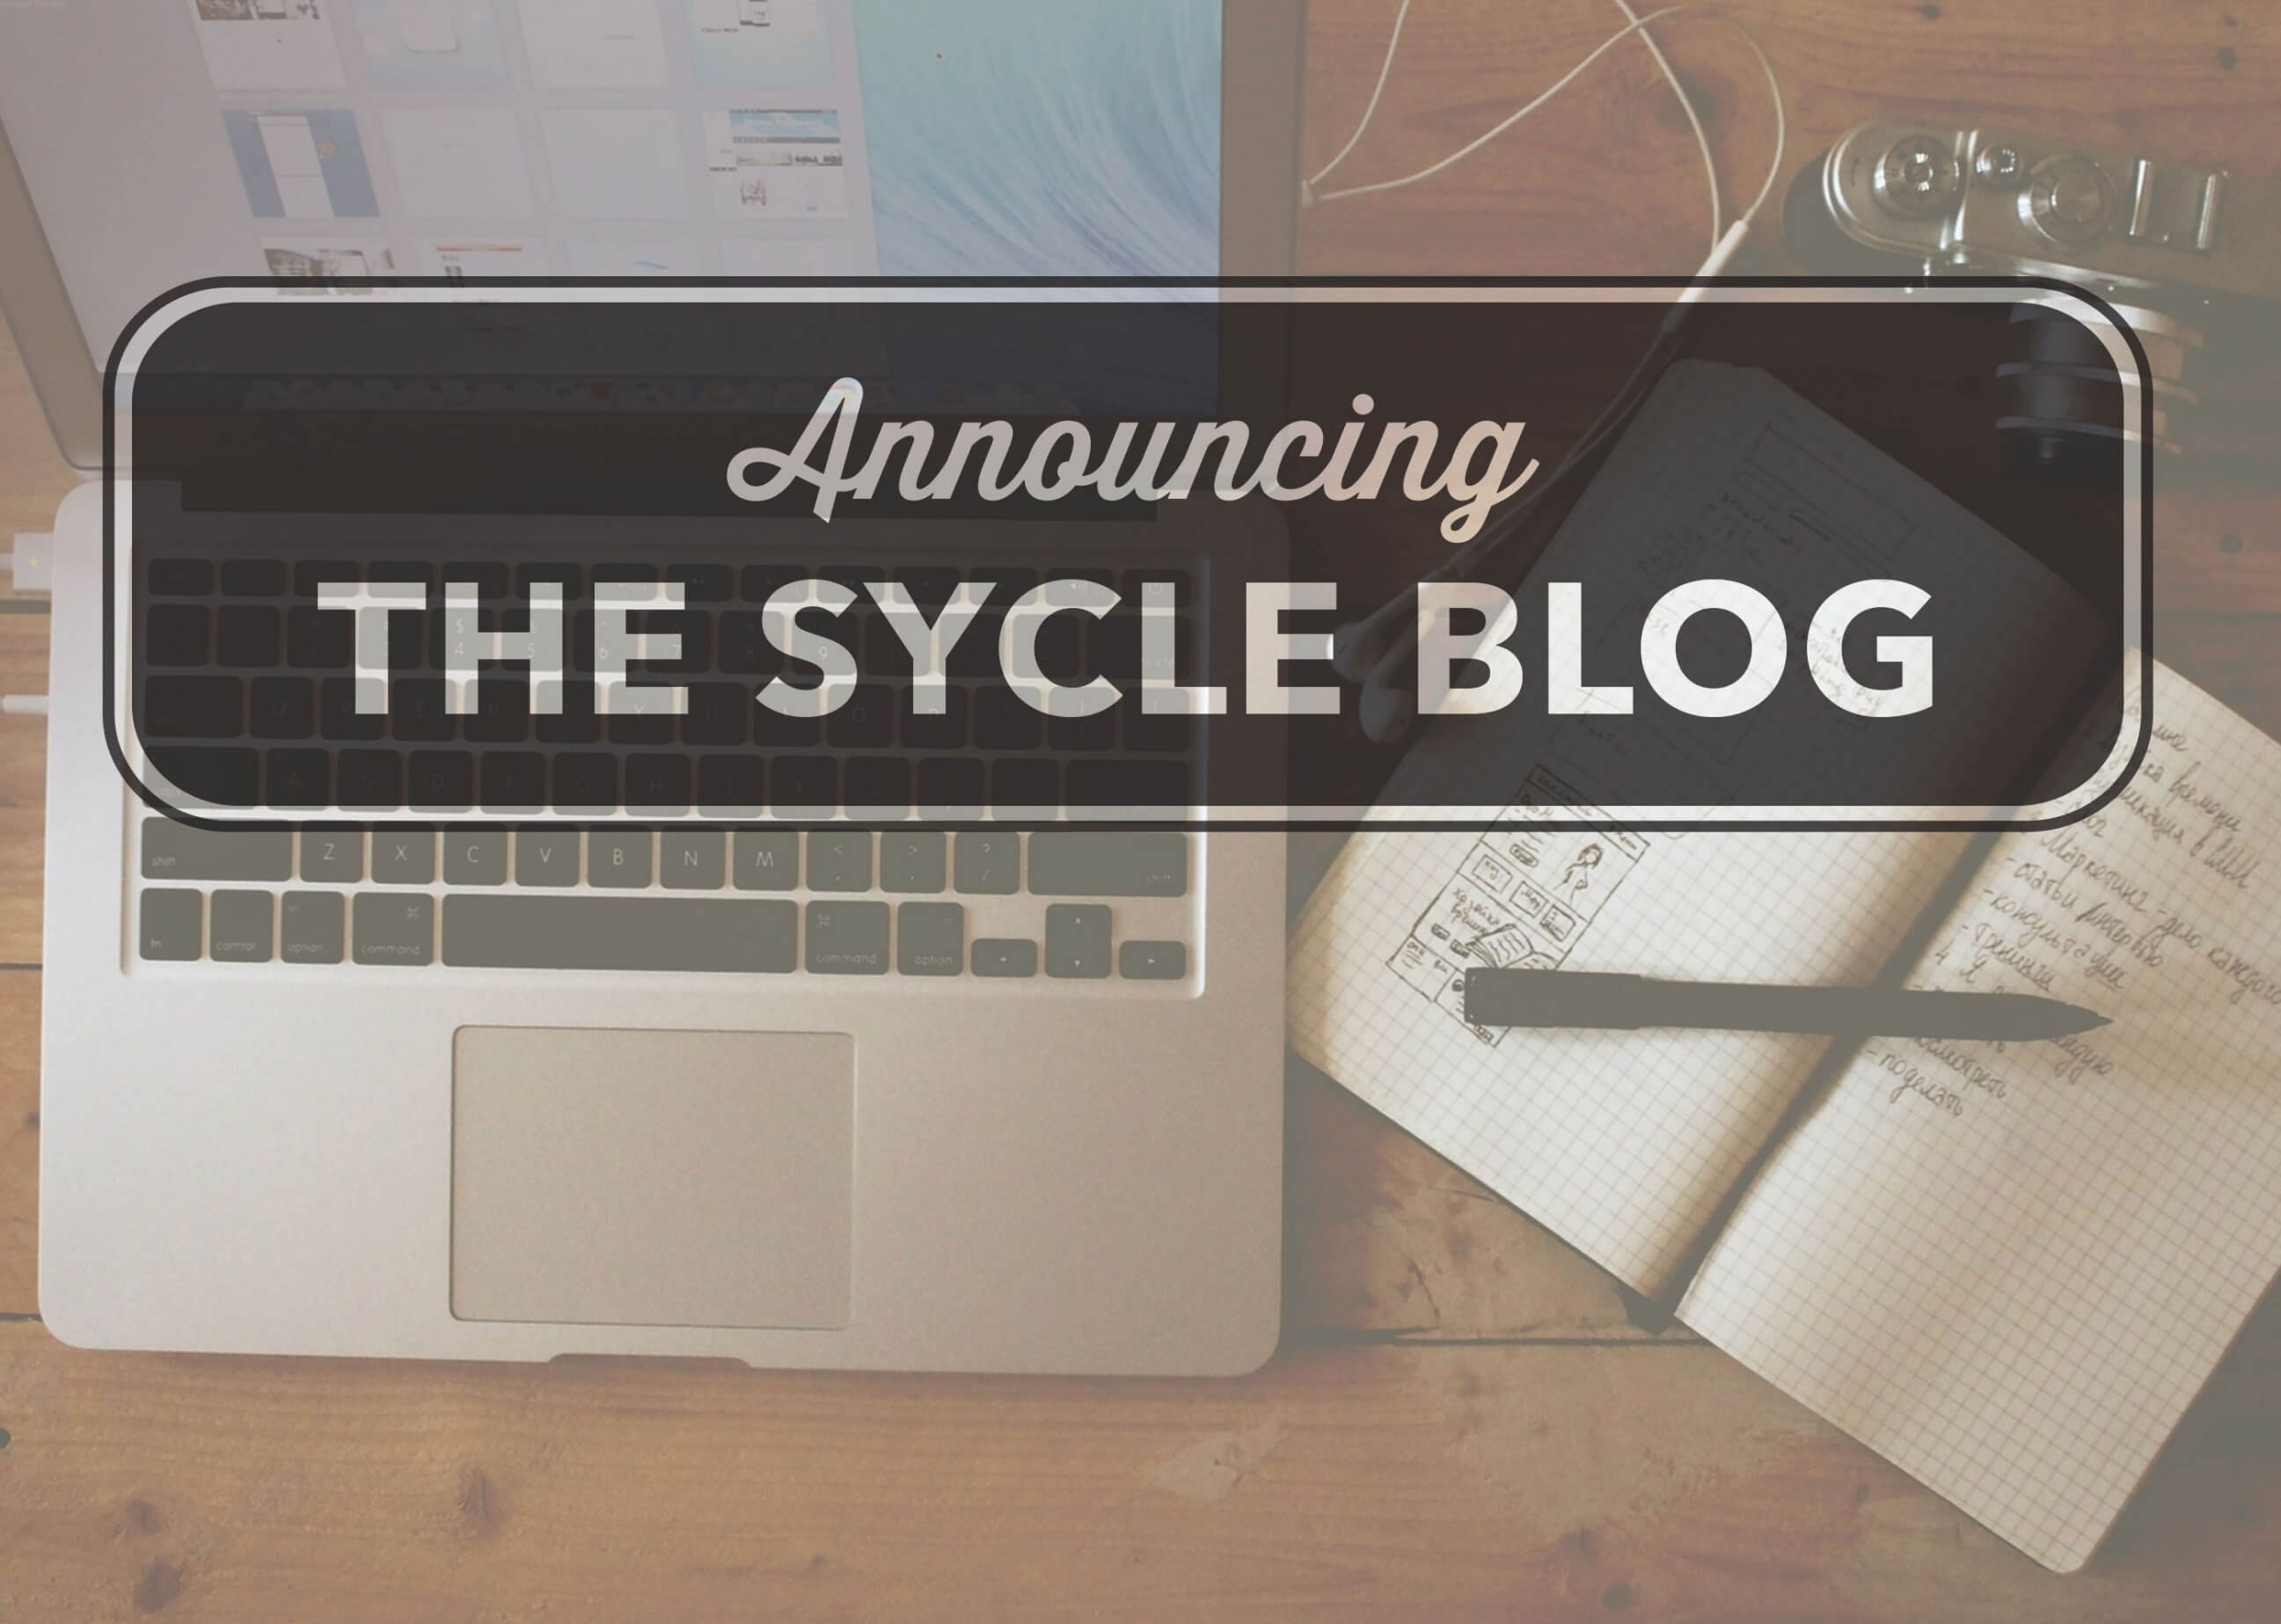 Announcing the Sycle Blog image